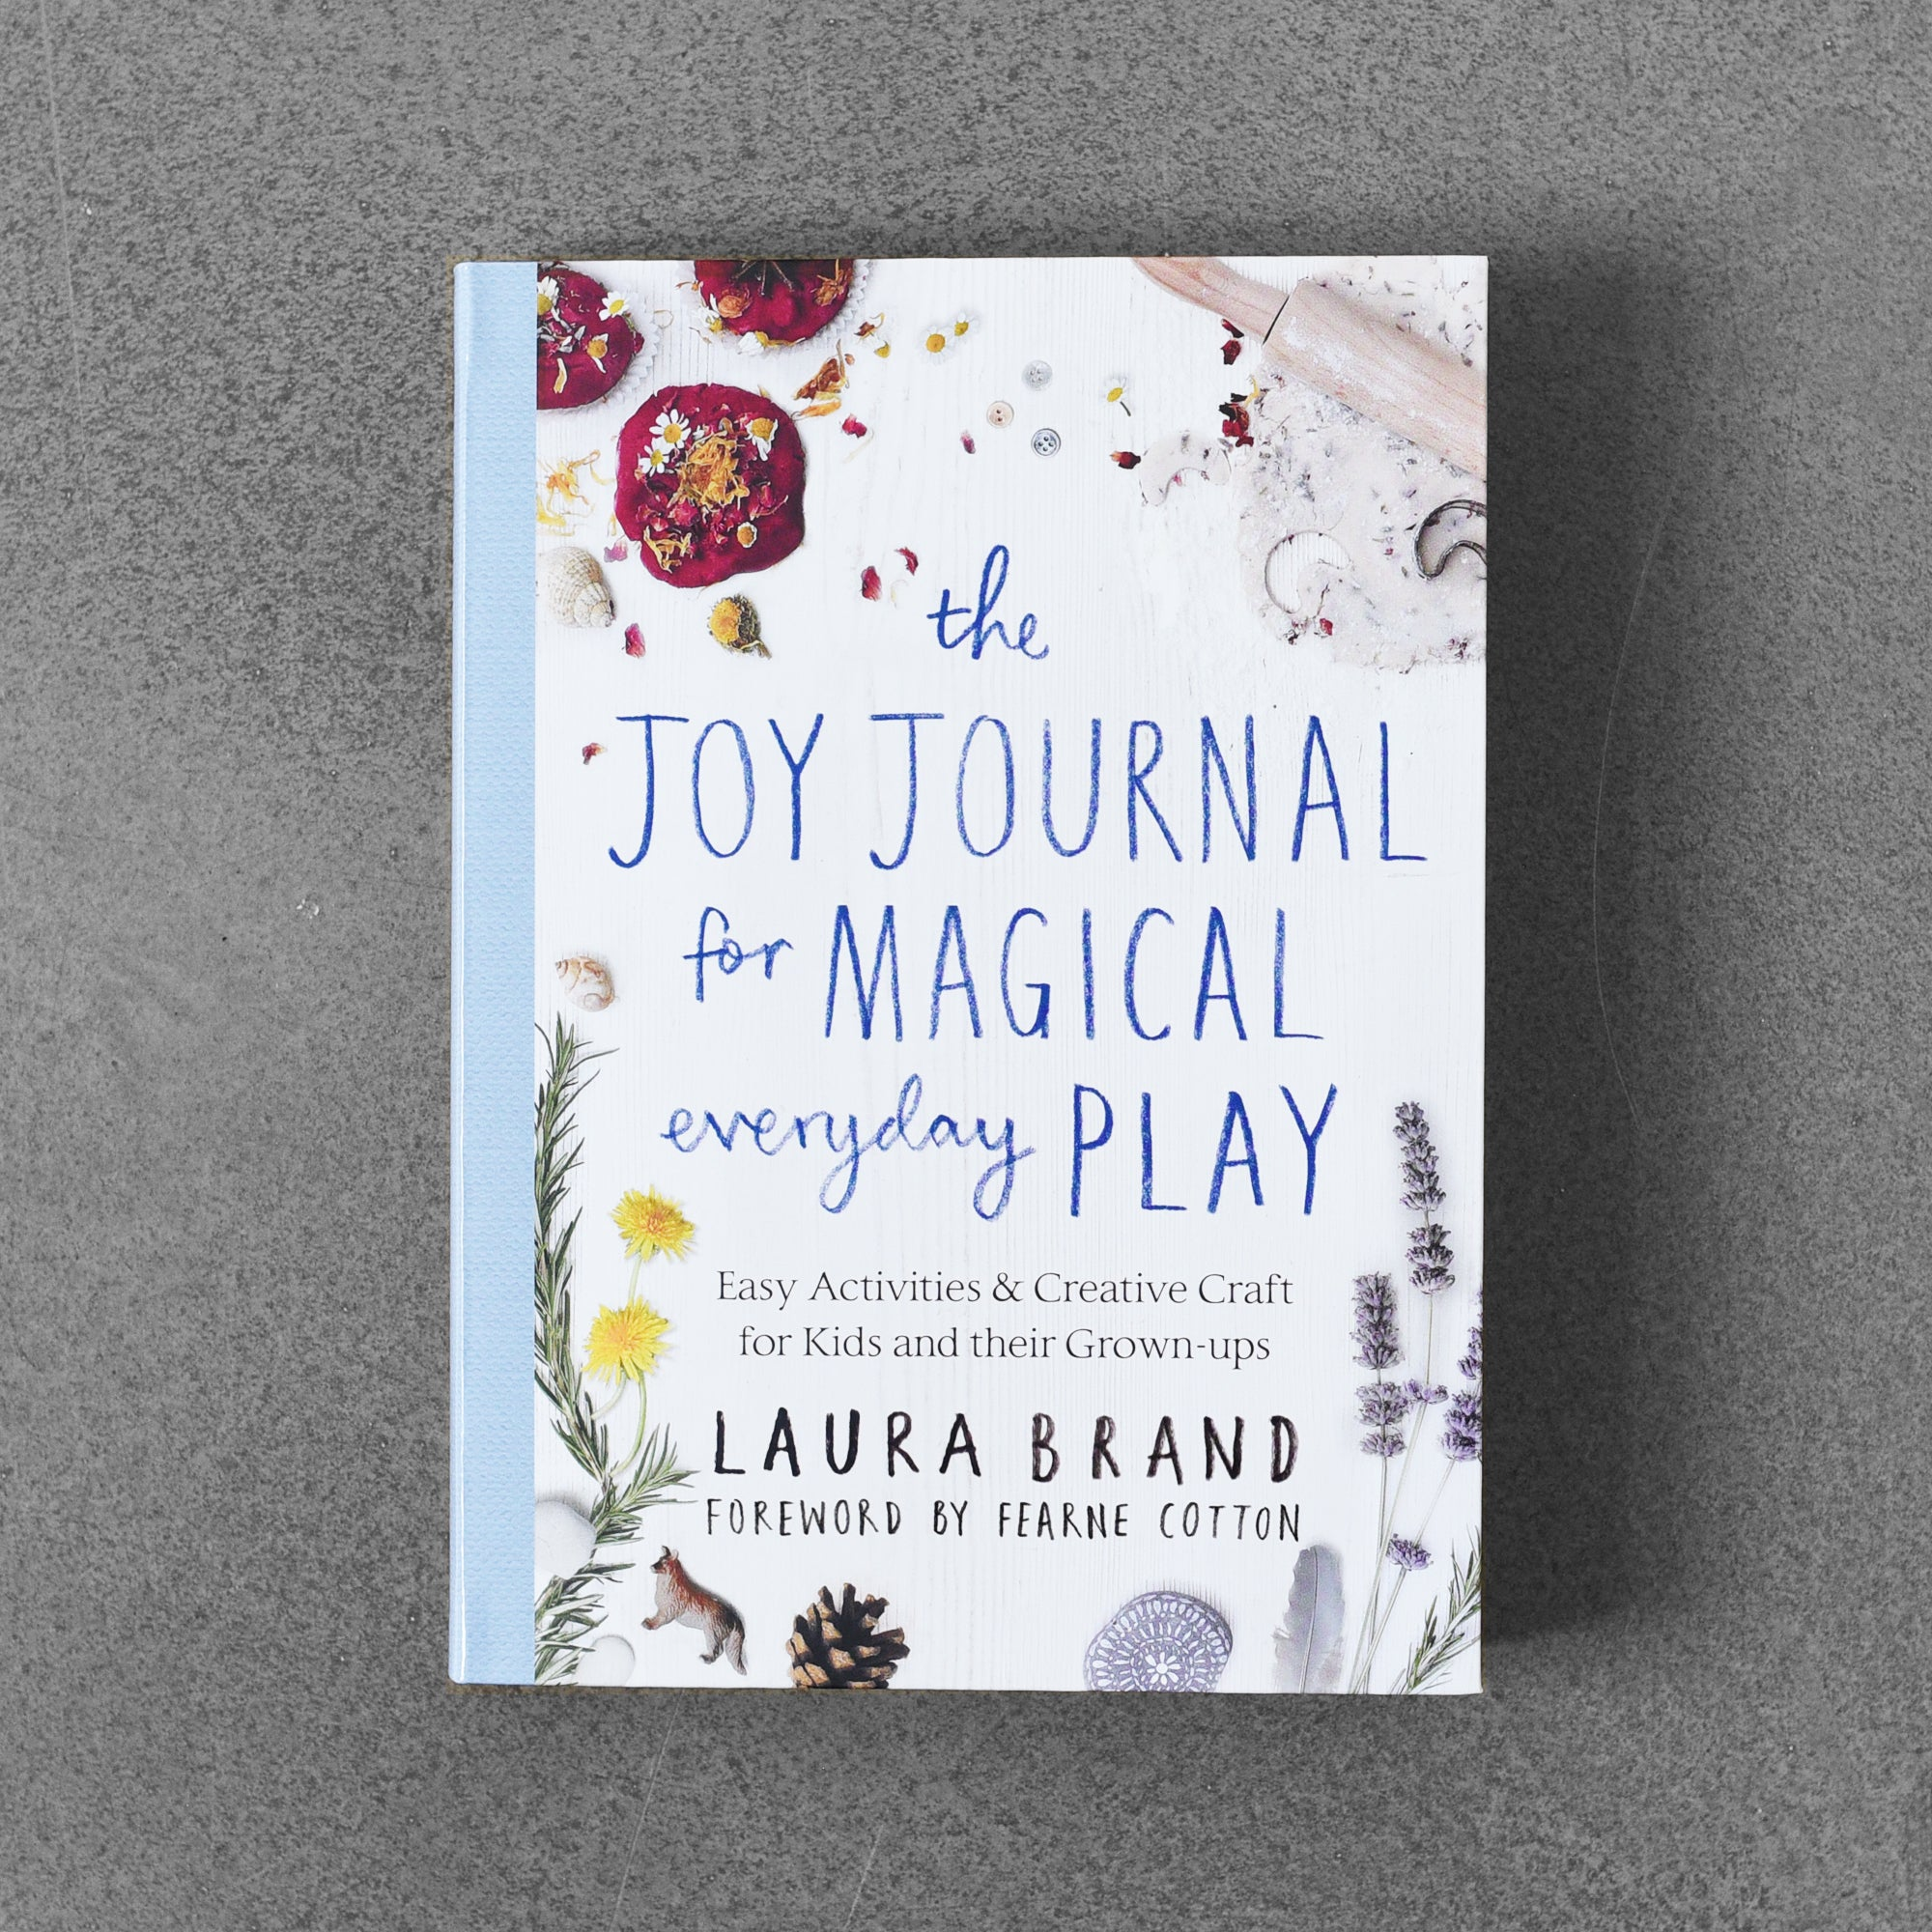 The Joy Journal for Magical Everyday Play - Laura Brand